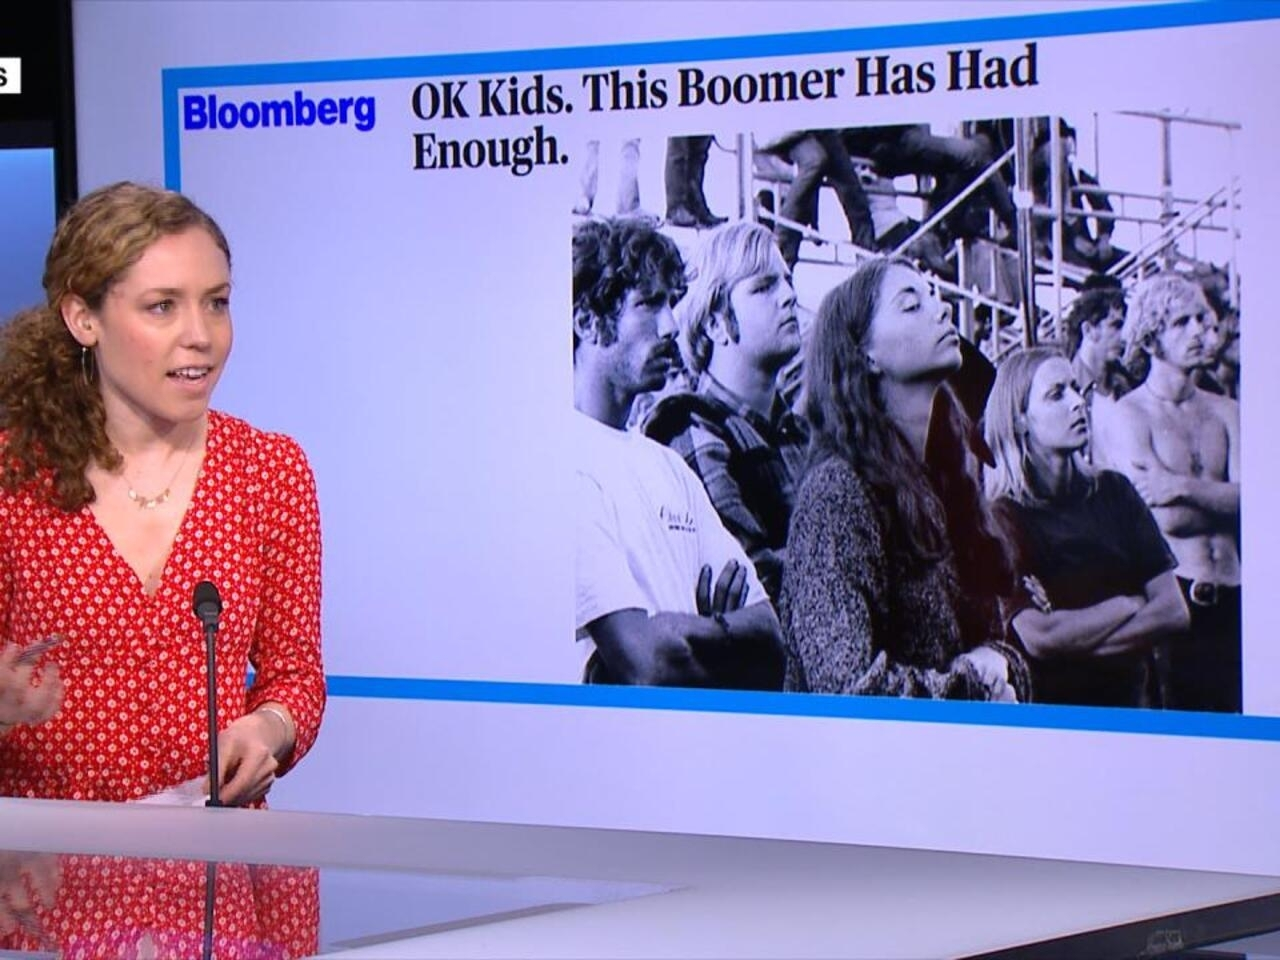 Not Ok Boomer The Viral Quip Encompassing The Generational Divide In The Press